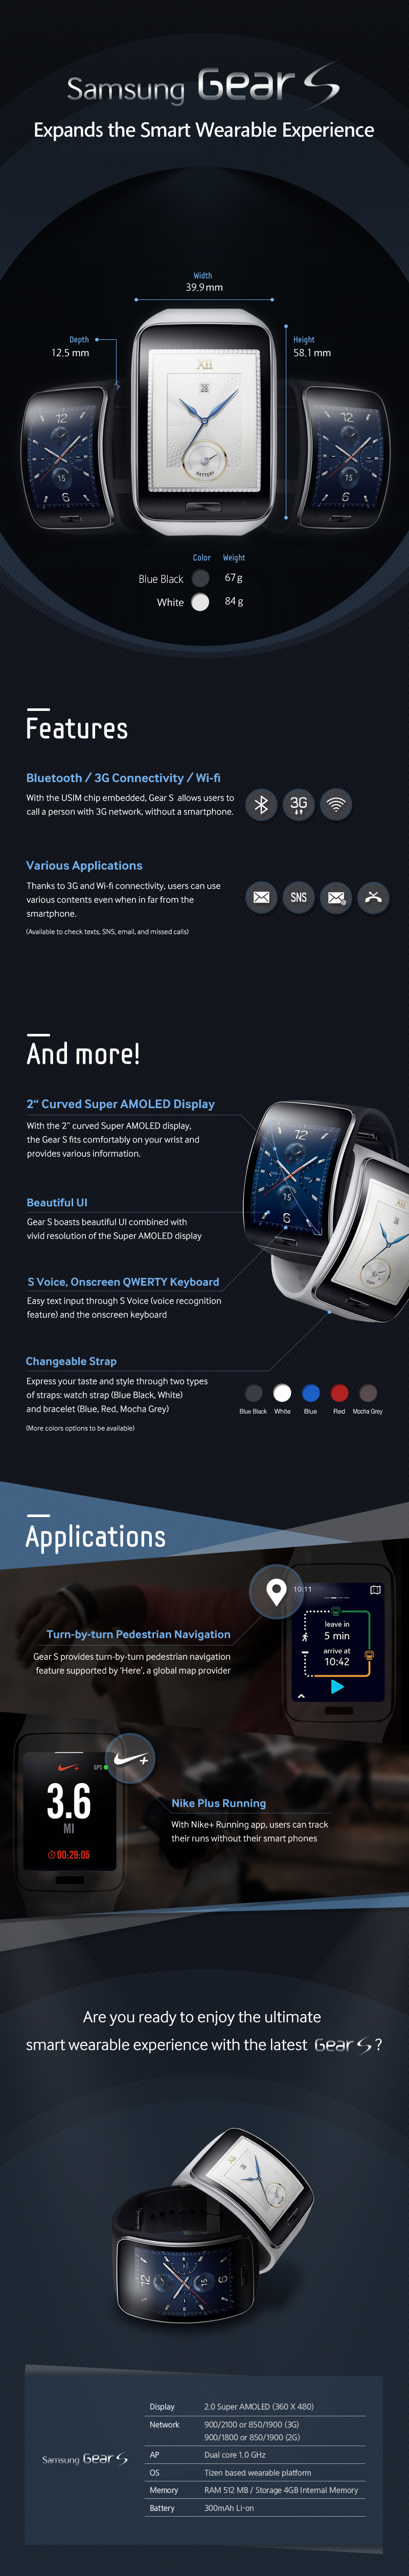 Infographic smart wearable Gear S